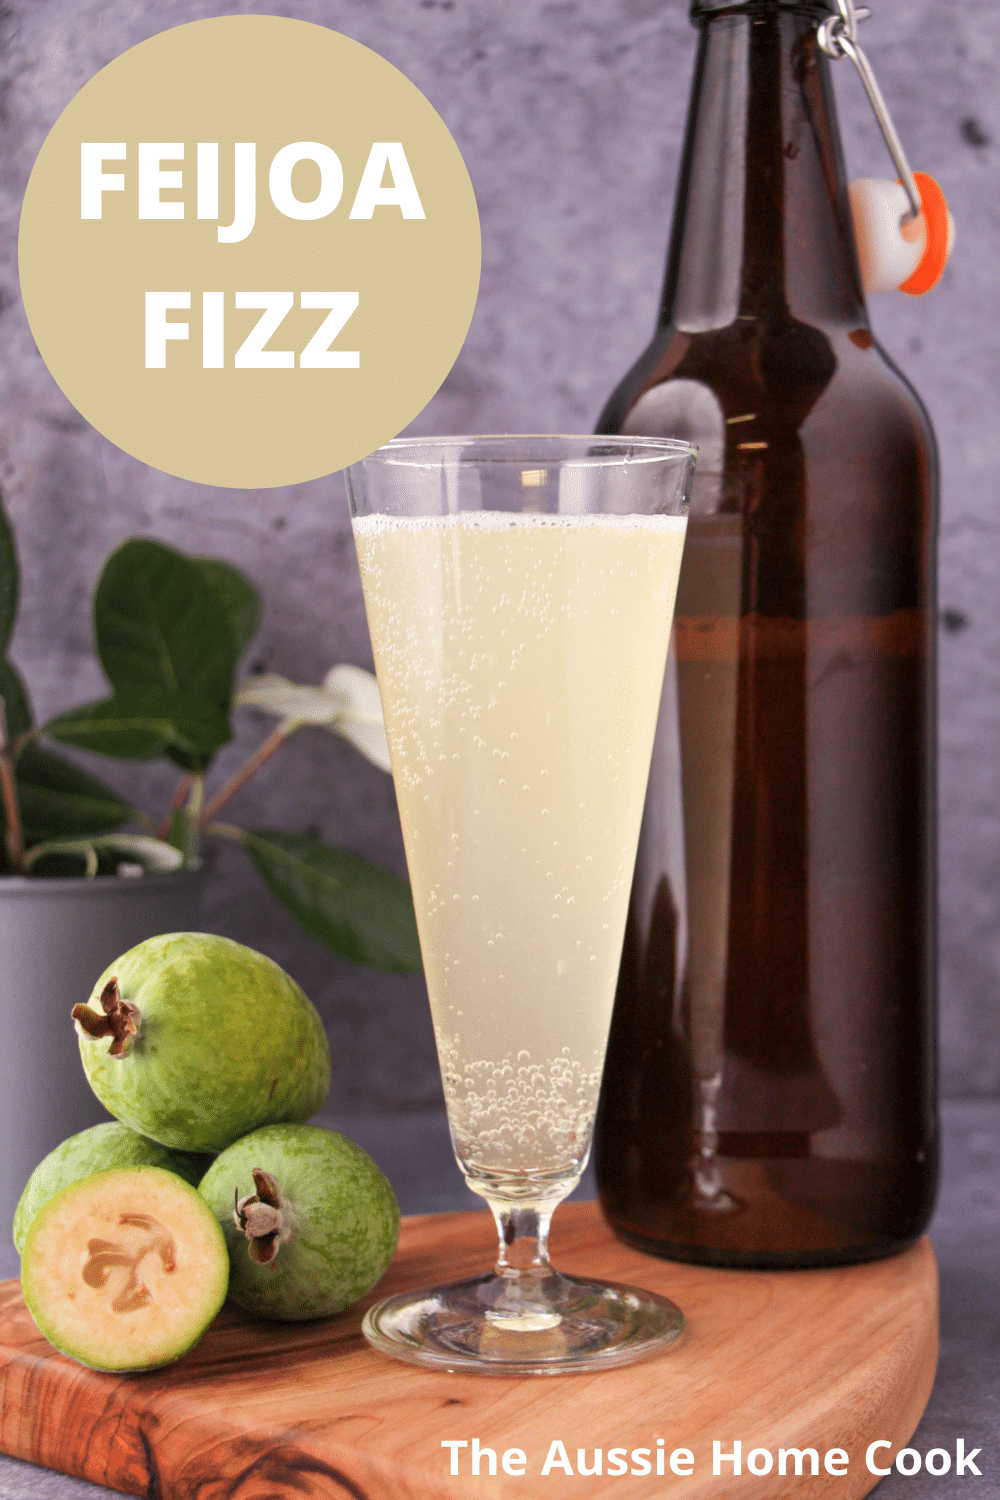 Tall glass of feijoa fizz on a board, with bottle of feijoa fizz, fresh feijoas and feijoa leaves, with text overlay, feijoa fizz and The Aussie Home Cook.